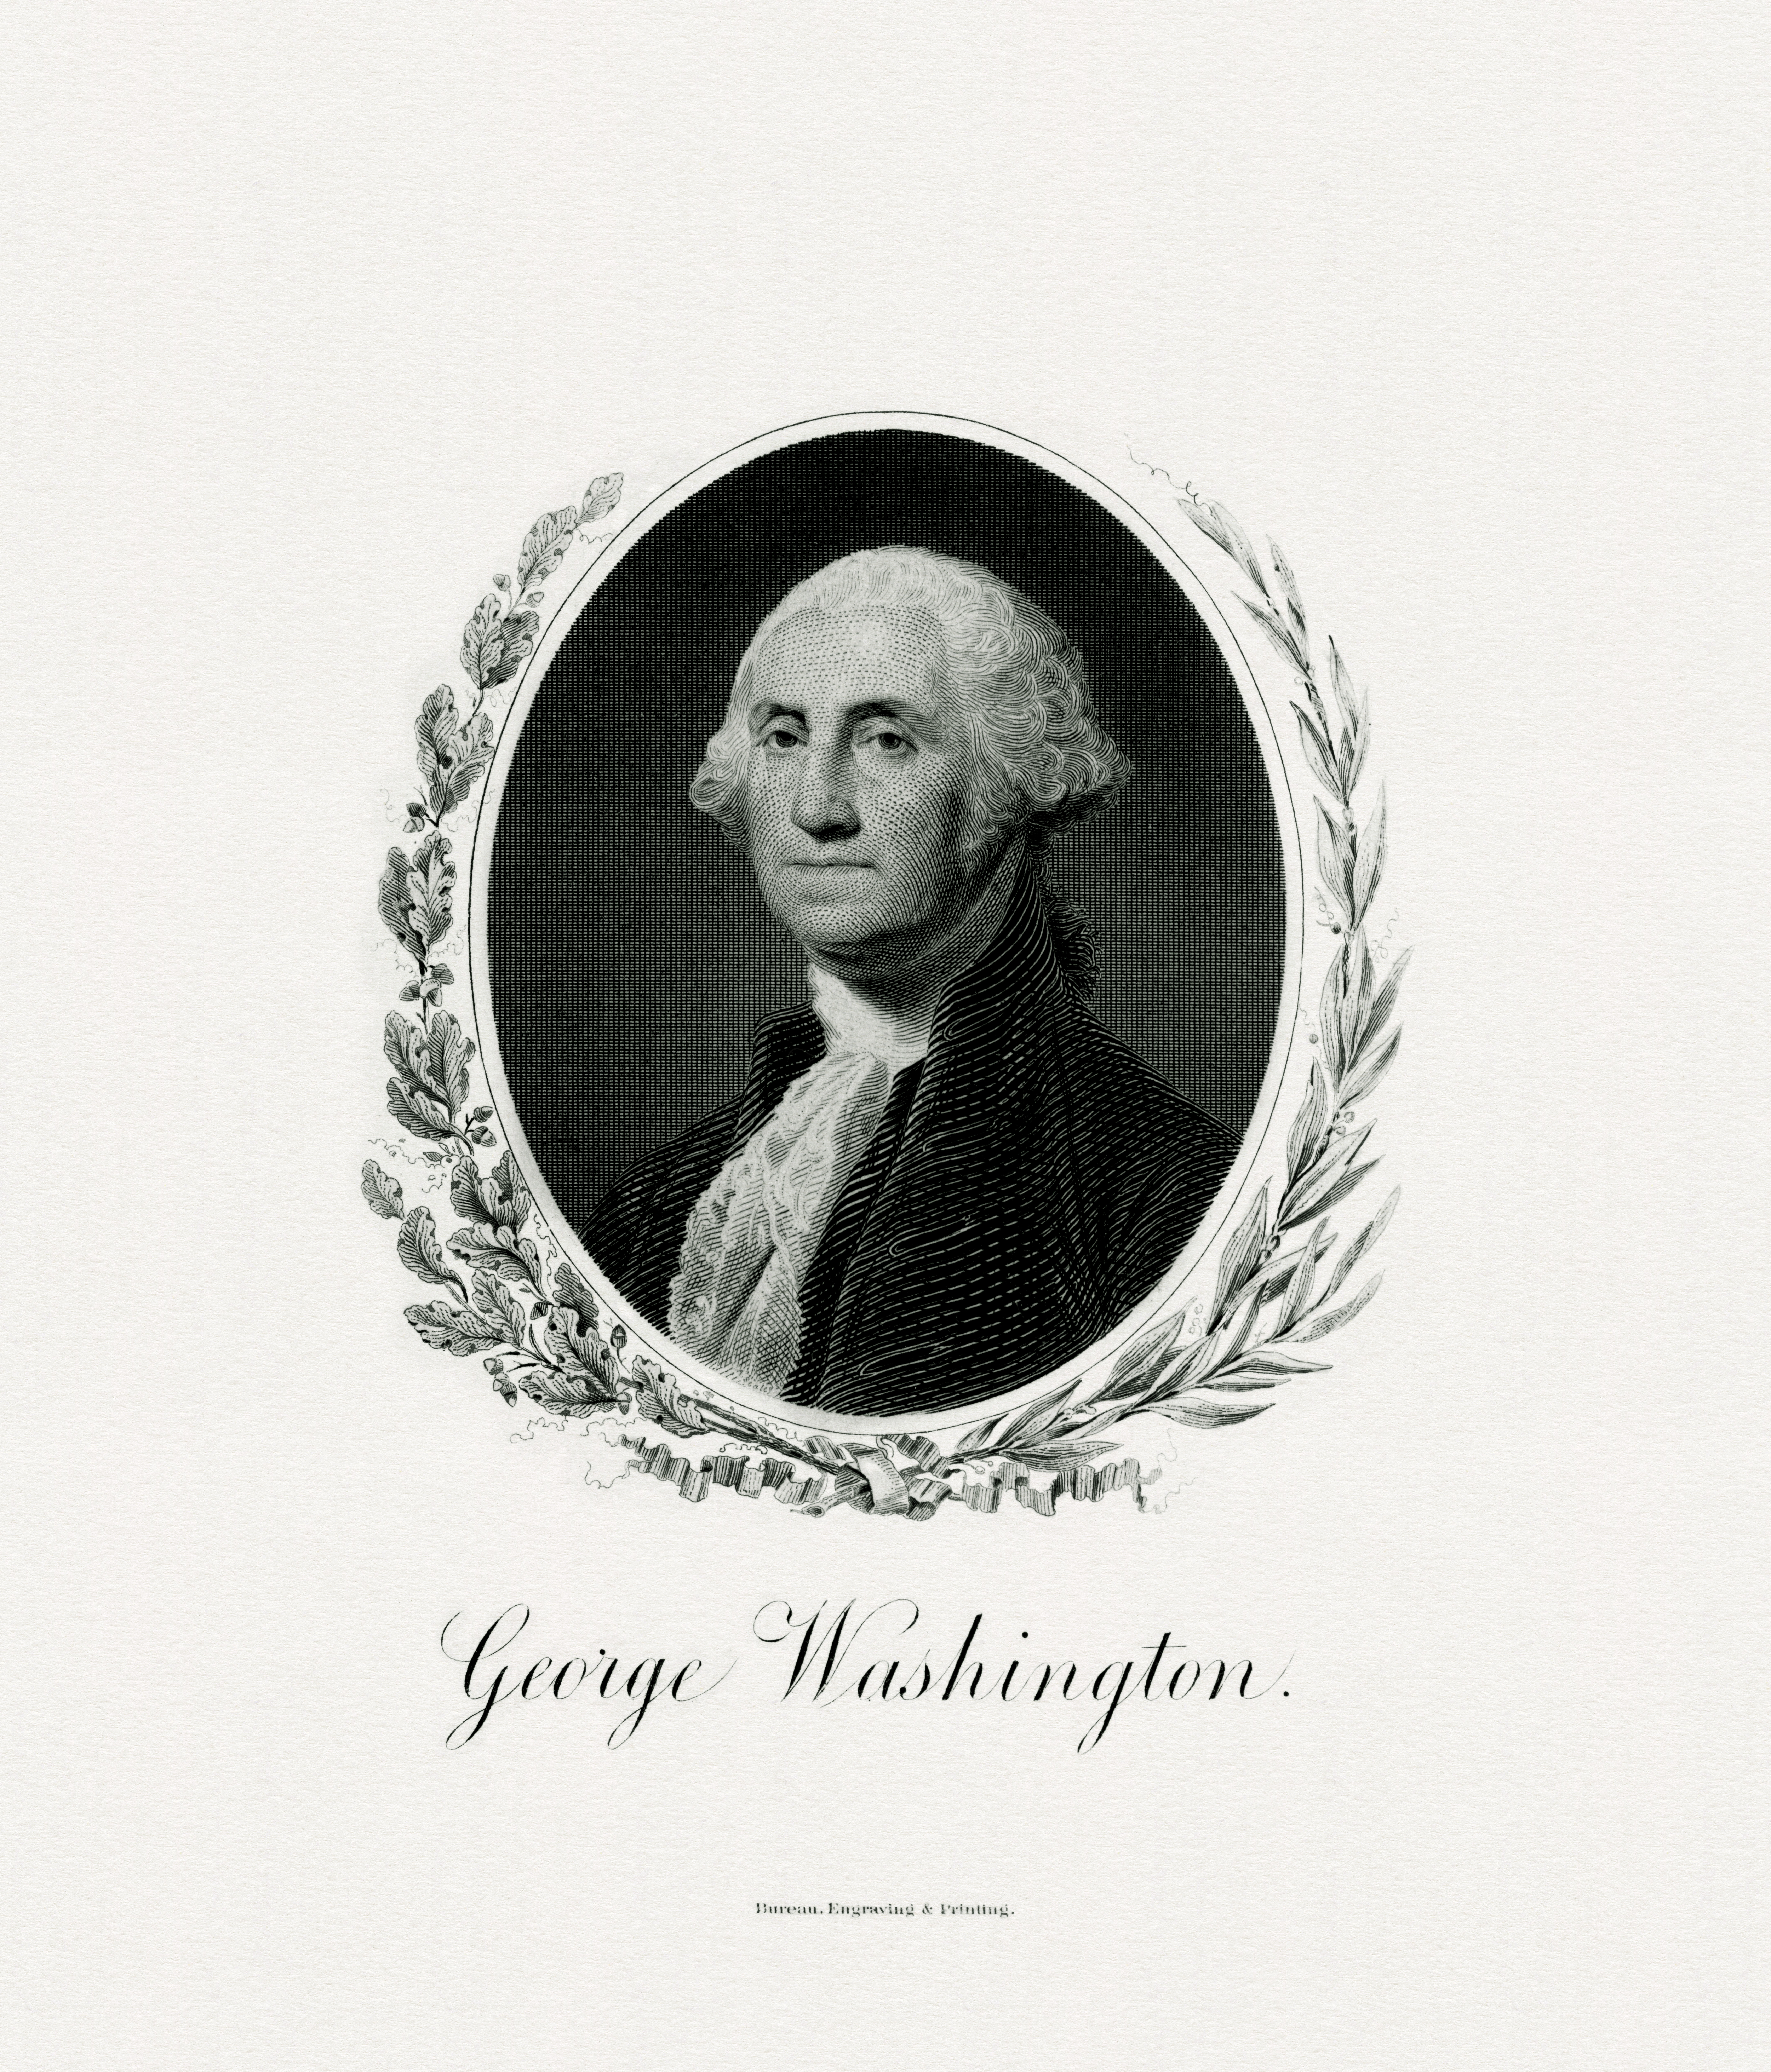 How was George Washington before, during and after the American Revolution, did he change?